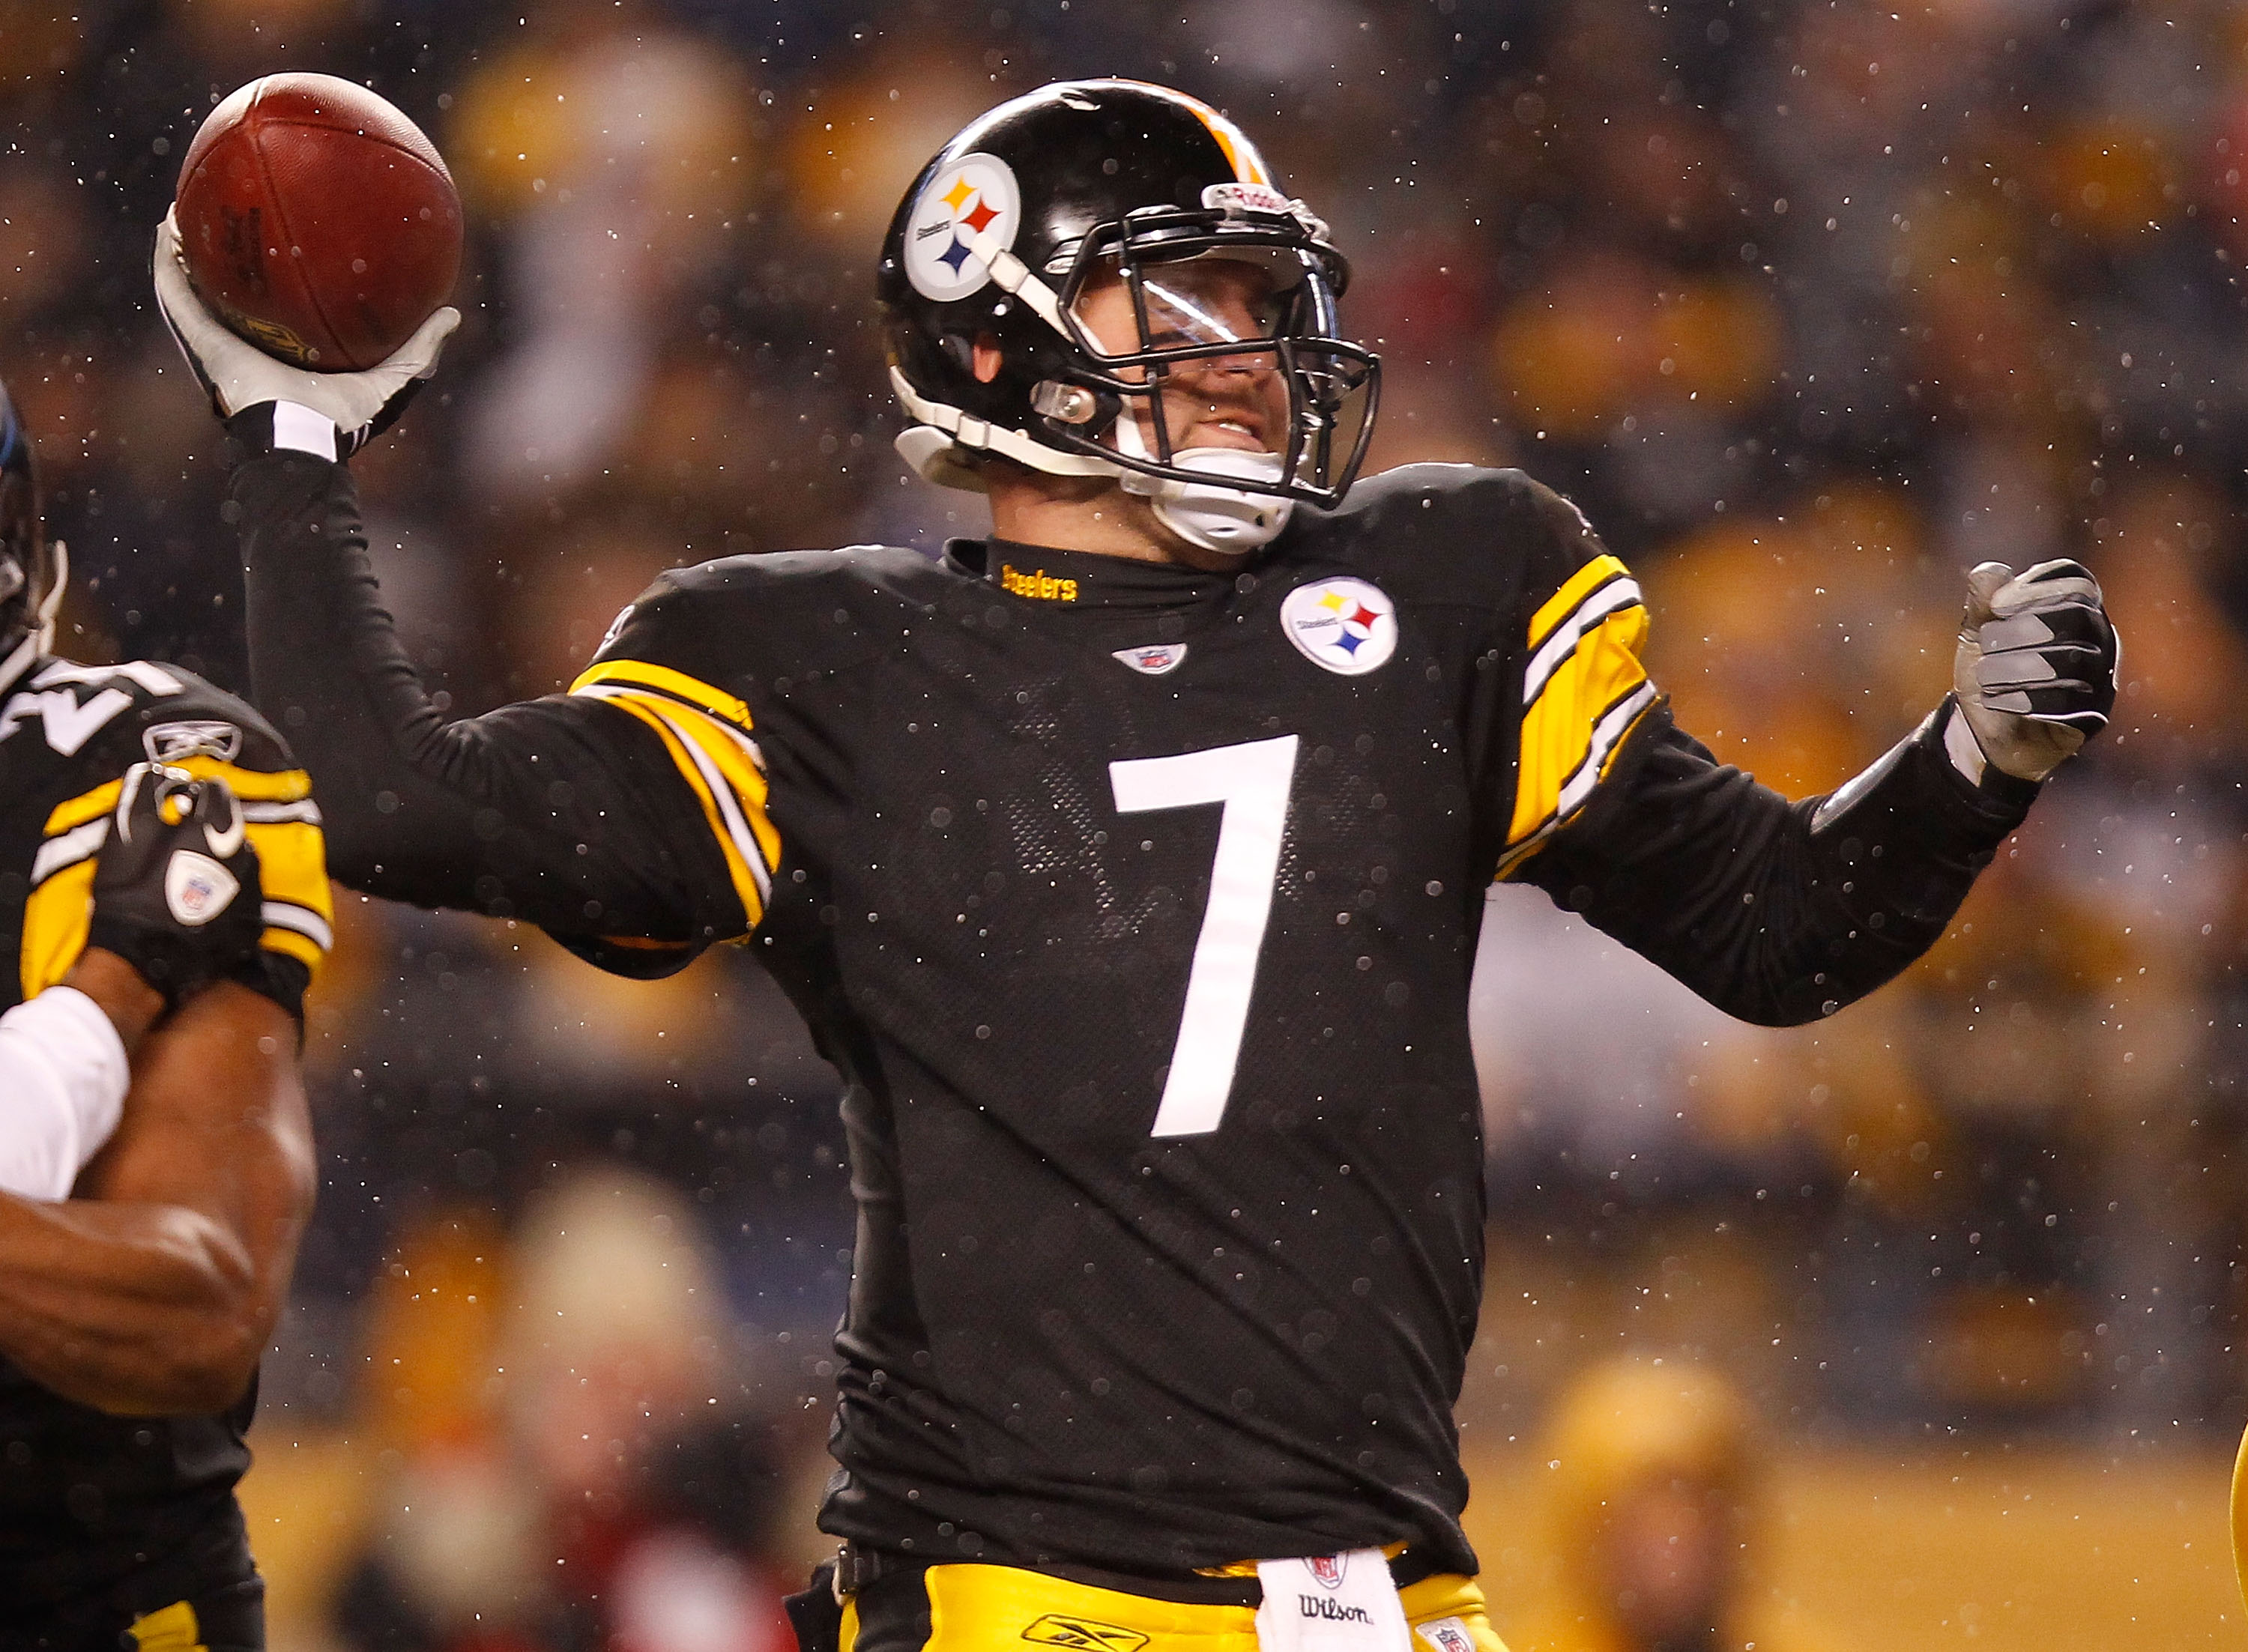 PITTSBURGH - DECEMBER 19: Ben Roethlisberger #7 of the Pittsburgh Steelers drops back to pass against the New York Jets during the game on December 19, 2010 at Heinz Field in Pittsburgh, Pennsylvania.  (Photo by Jared Wickerham/Getty Images)